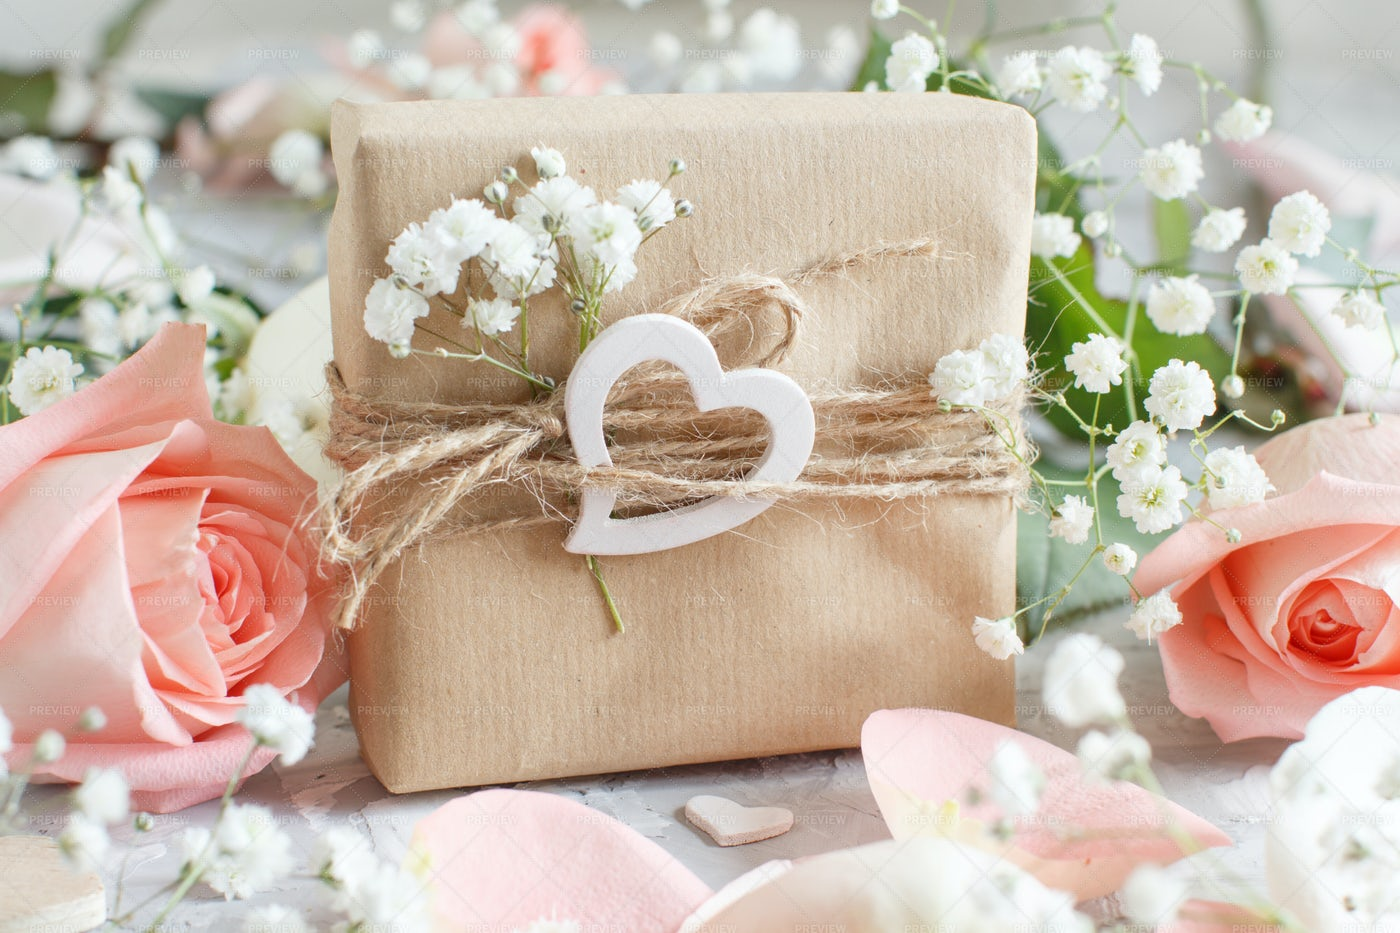 Gift Box With Roses: Stock Photos